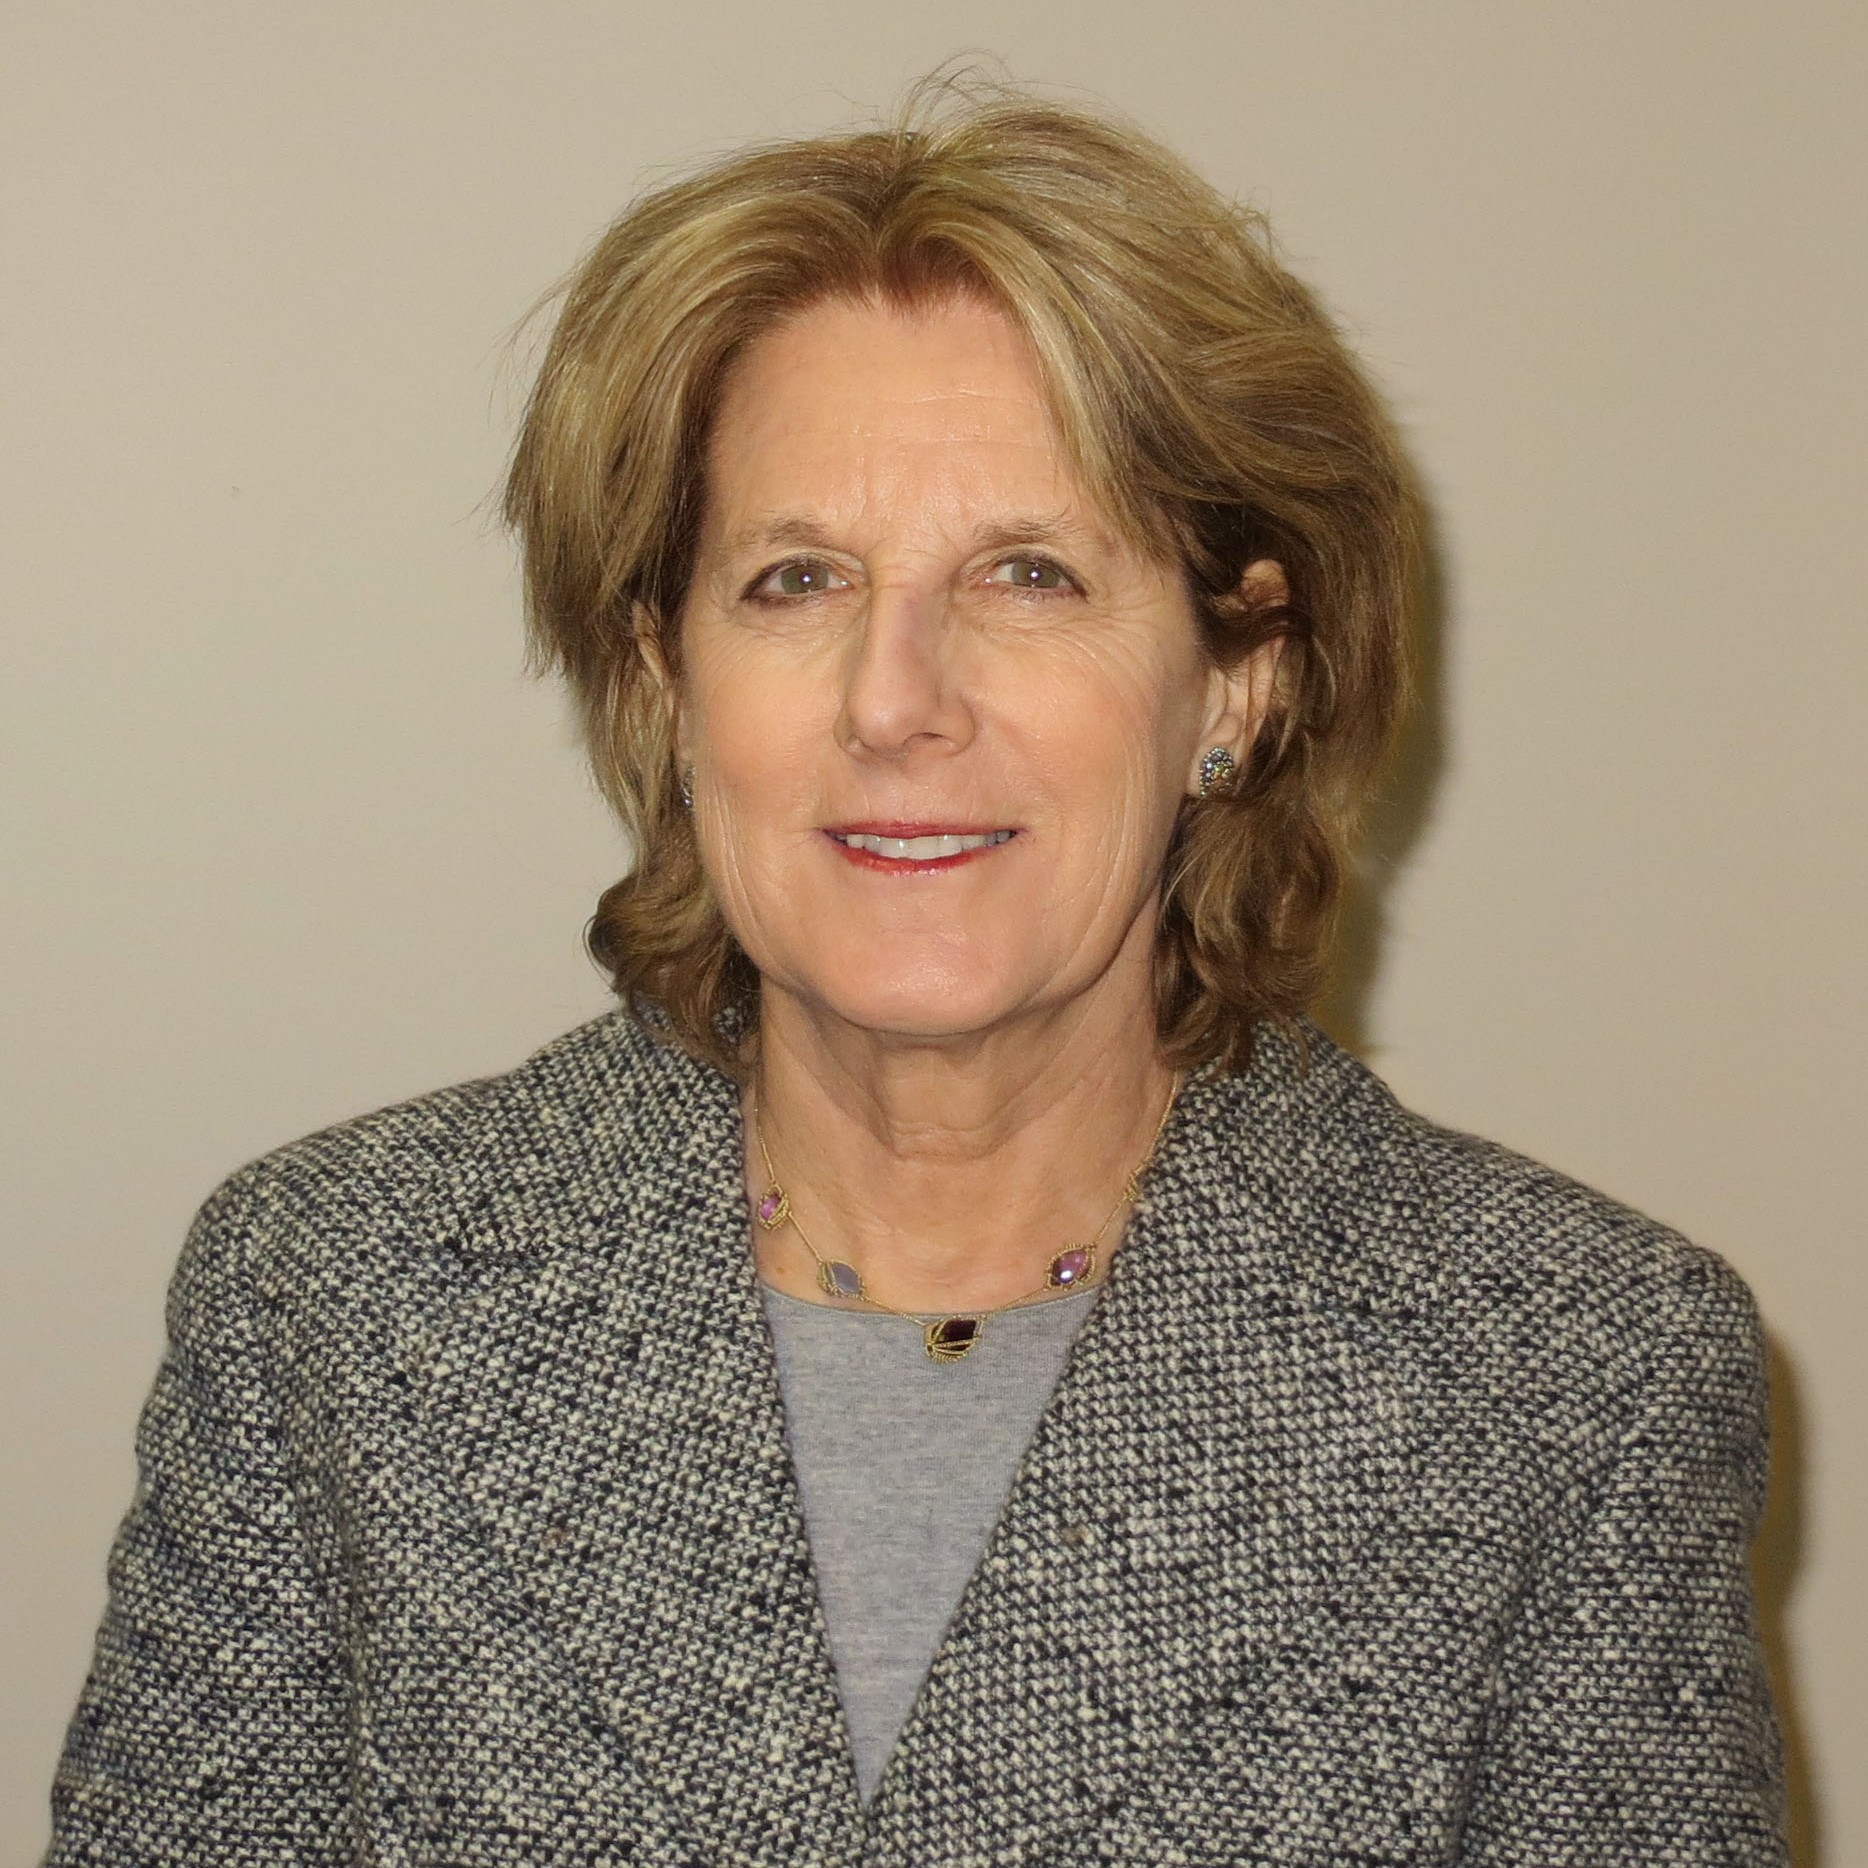 Barbara Kates-Garnick - Professor of Practice and Senior Research Fellow, Center for International Environment and Resource Policy, Fletcher School, Tufts University